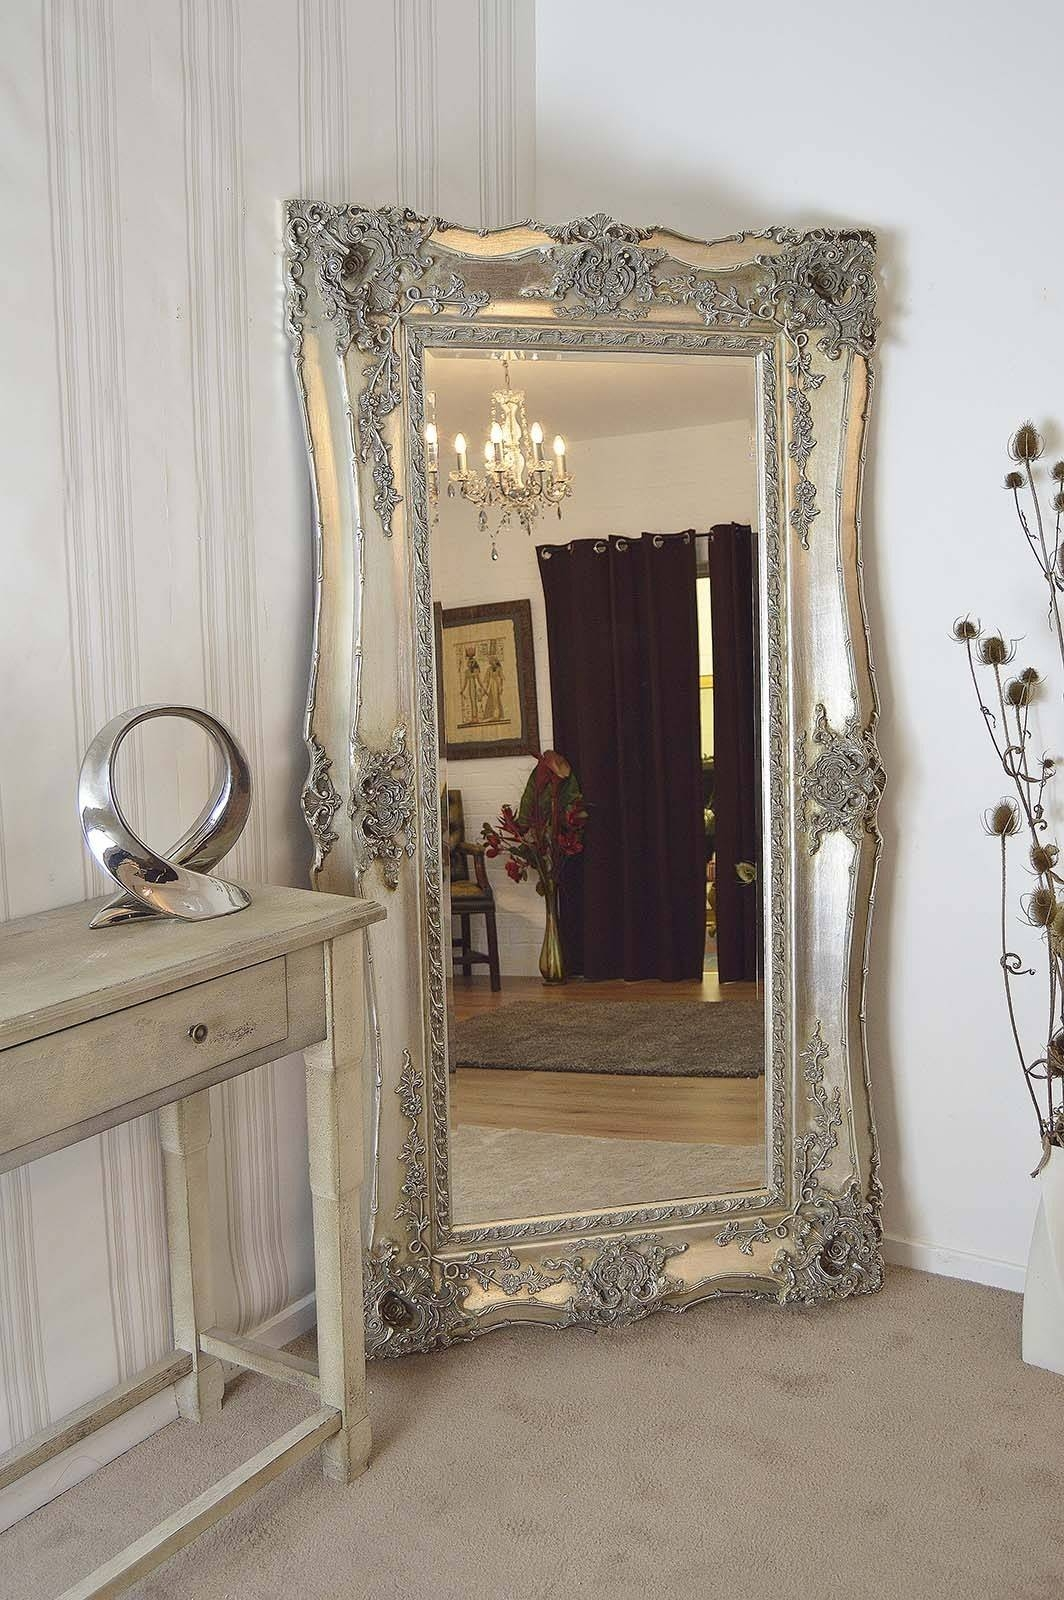 Bedroom Furniture : Floor Mirror White Floor Mirror Shabby Chic for White Shabby Chic Mirrors Sale (Image 6 of 25)